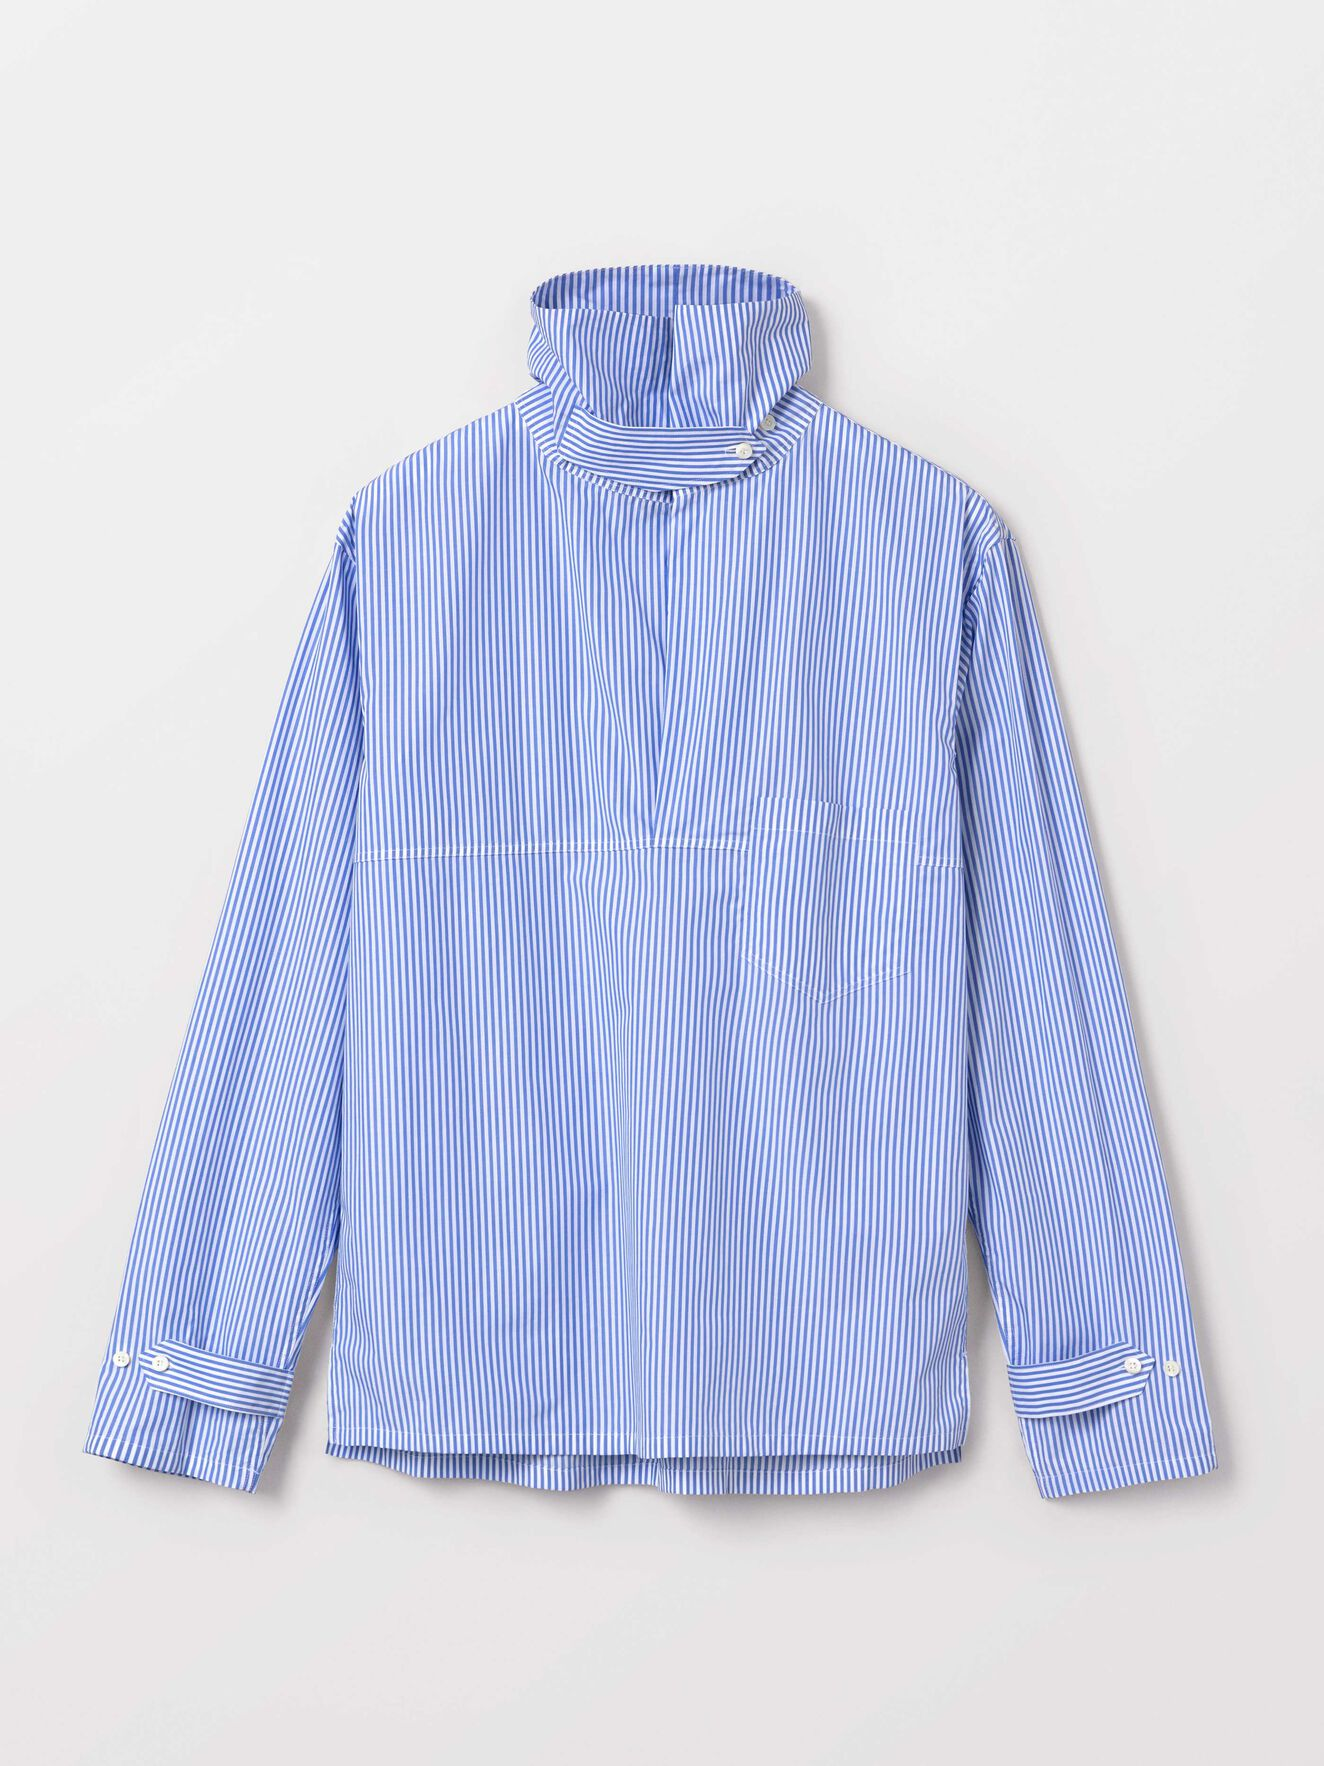 Favian Shirt in Pop Blue from Tiger of Sweden